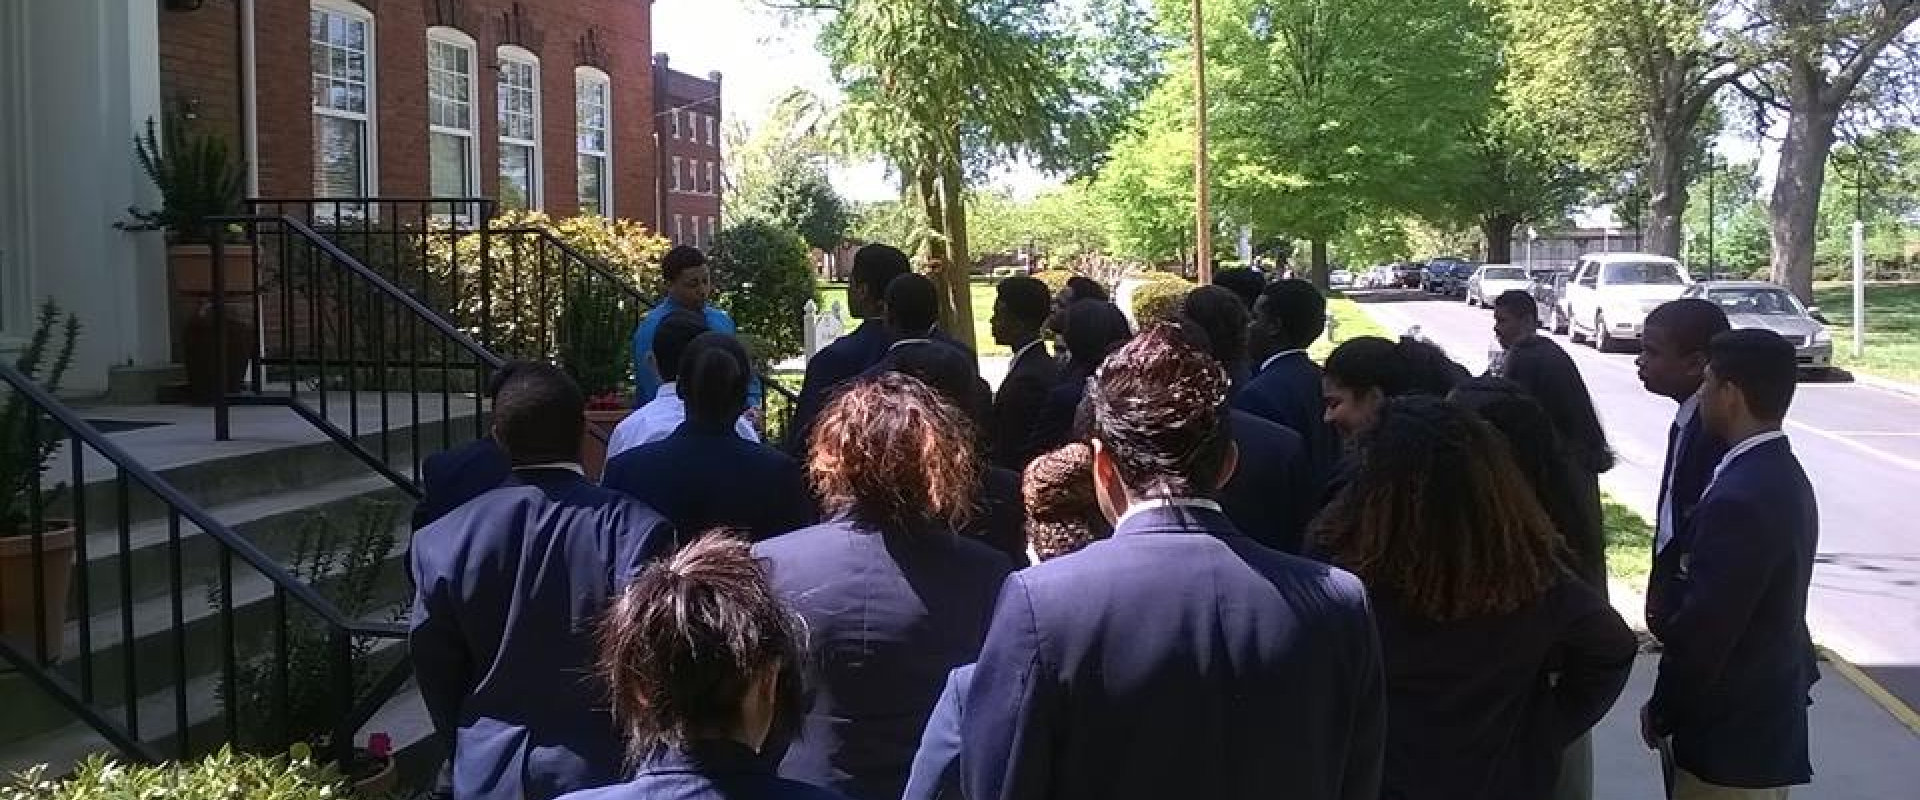 group of students outside of building